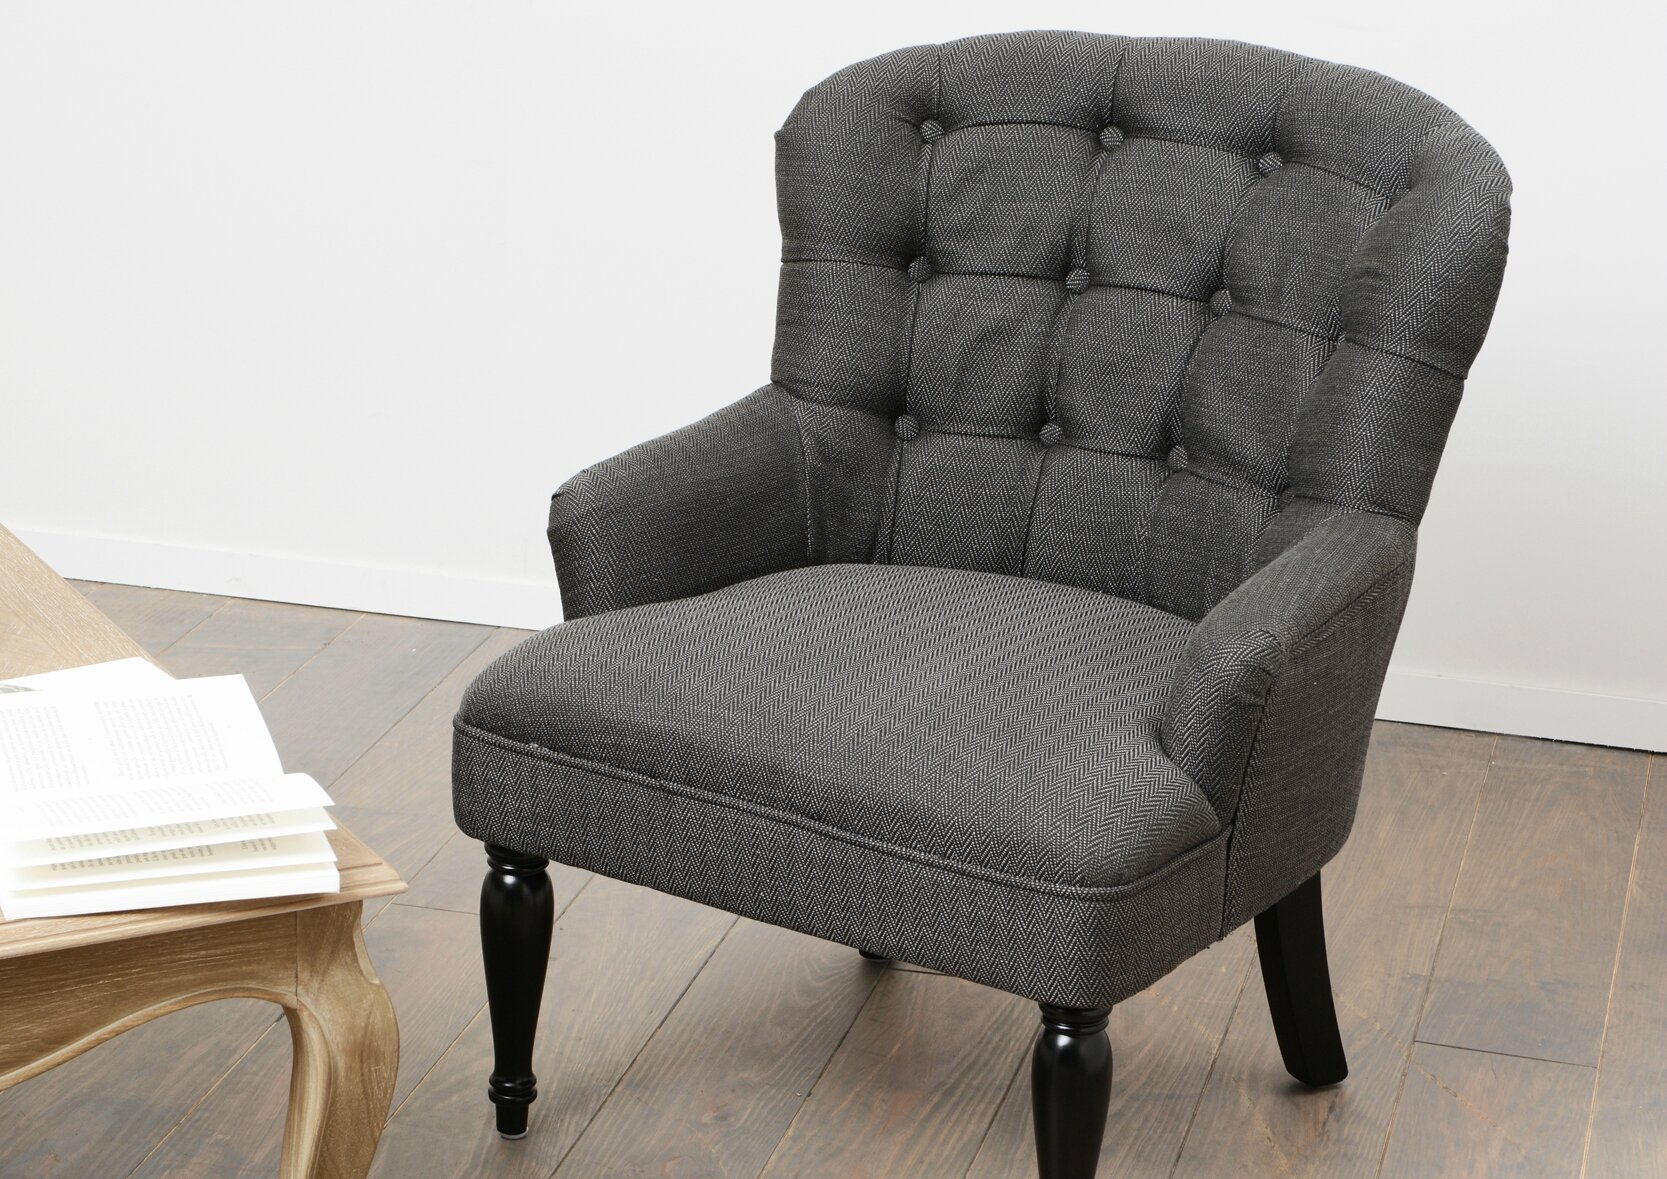 Fauteuil confortable salon for Fauteuil salon confortable